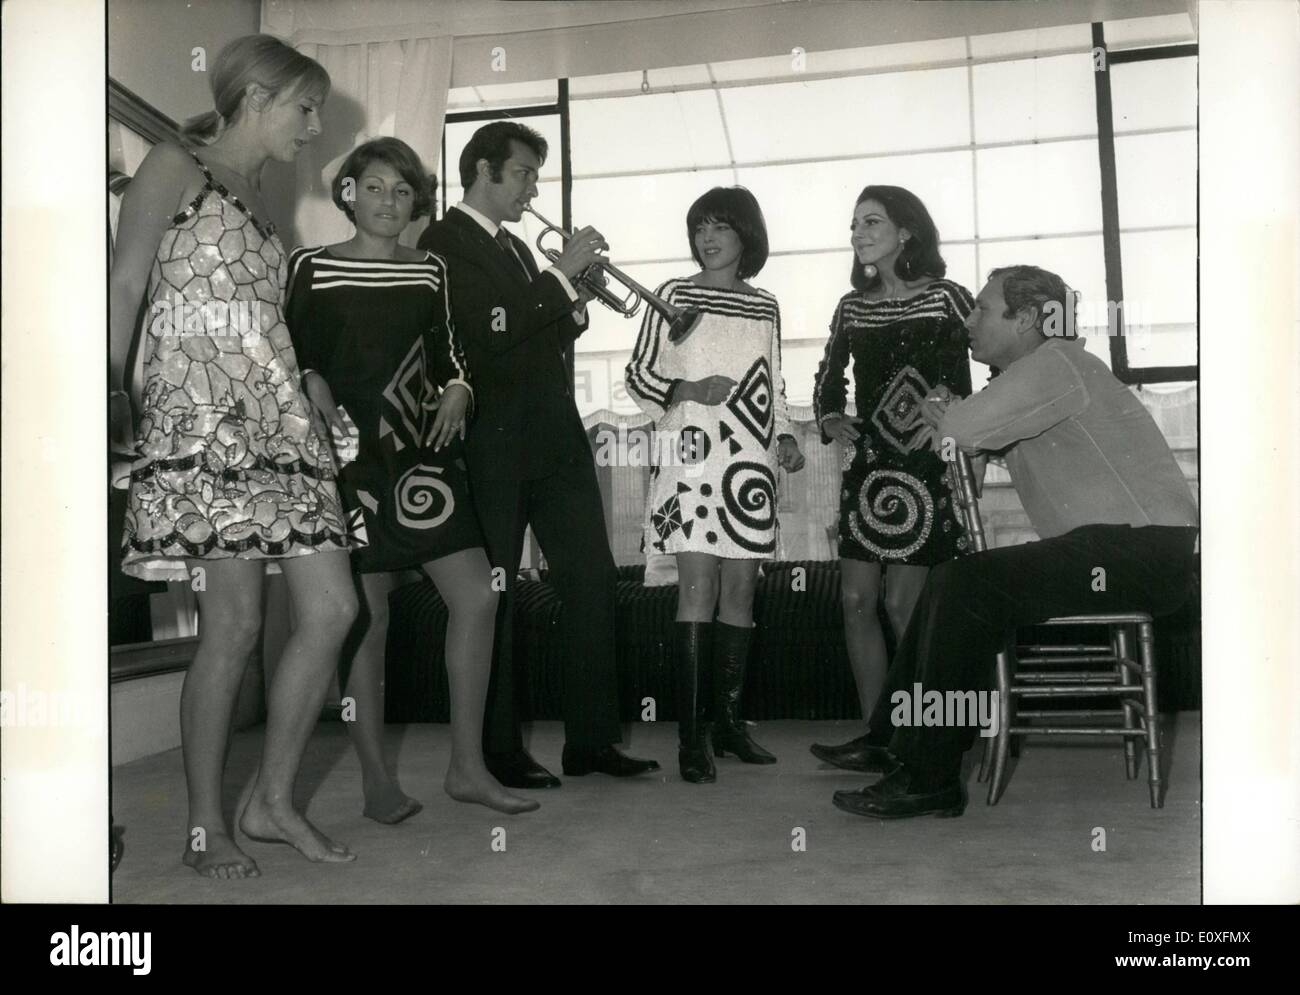 Sep. 09, 1966 - Famous Trumpet player serenades Feraud;s mannequins: Herb Alper, The famous AMerican Trumpet Player, is now in Paris. Today he paid a visit to the Paris Couturier Lous Feraud, Photo shows Alpert pictured serenading Feraud's models Feraud is seen on the right. - Stock Image